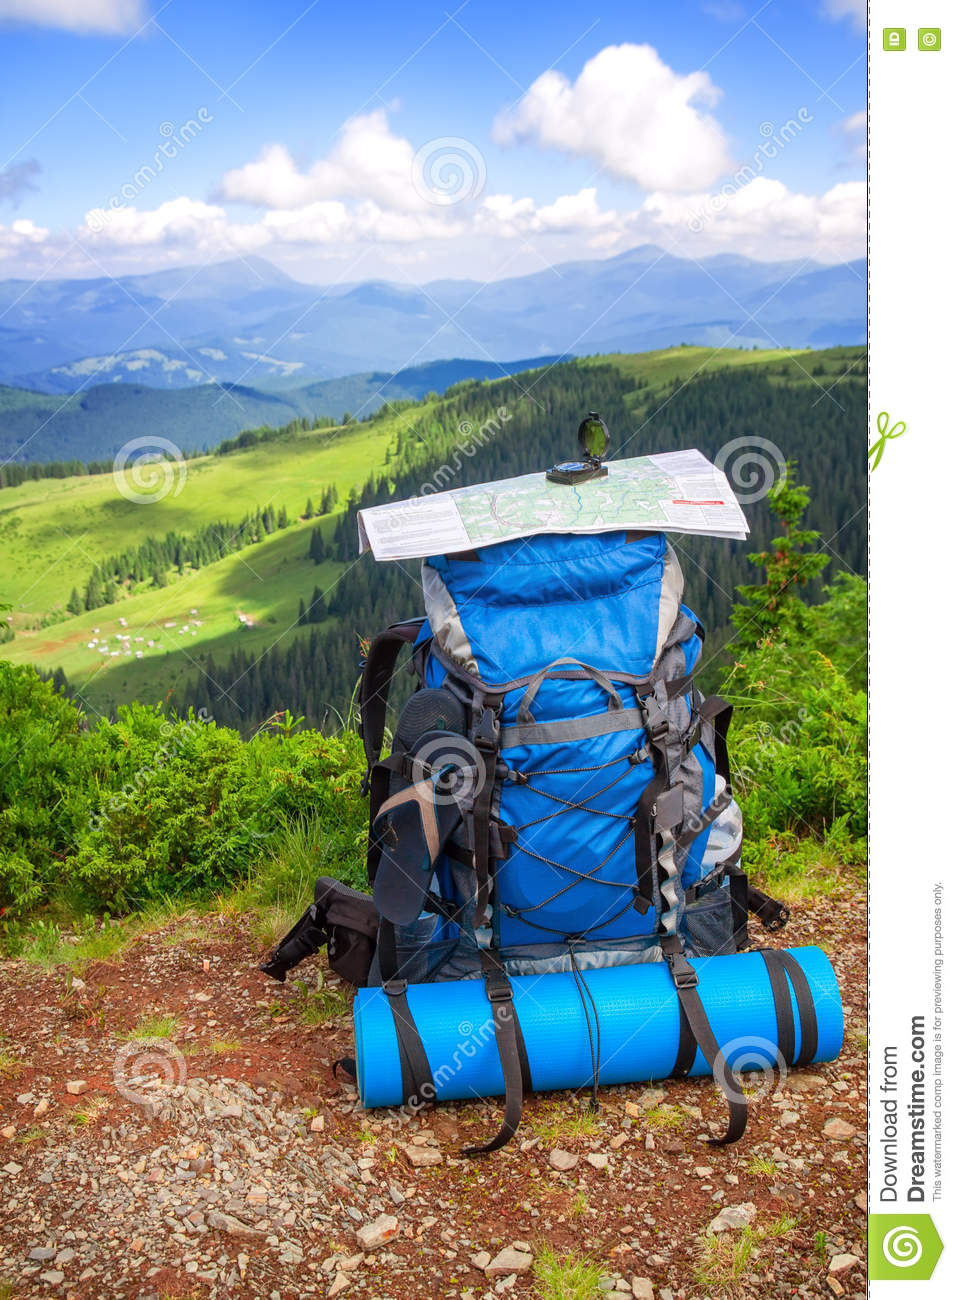 df0814add627 Camping gear and backpack on a background of mountains. Backpack traveler  and map on mountains background. Mountains landscape and big backpack with  map